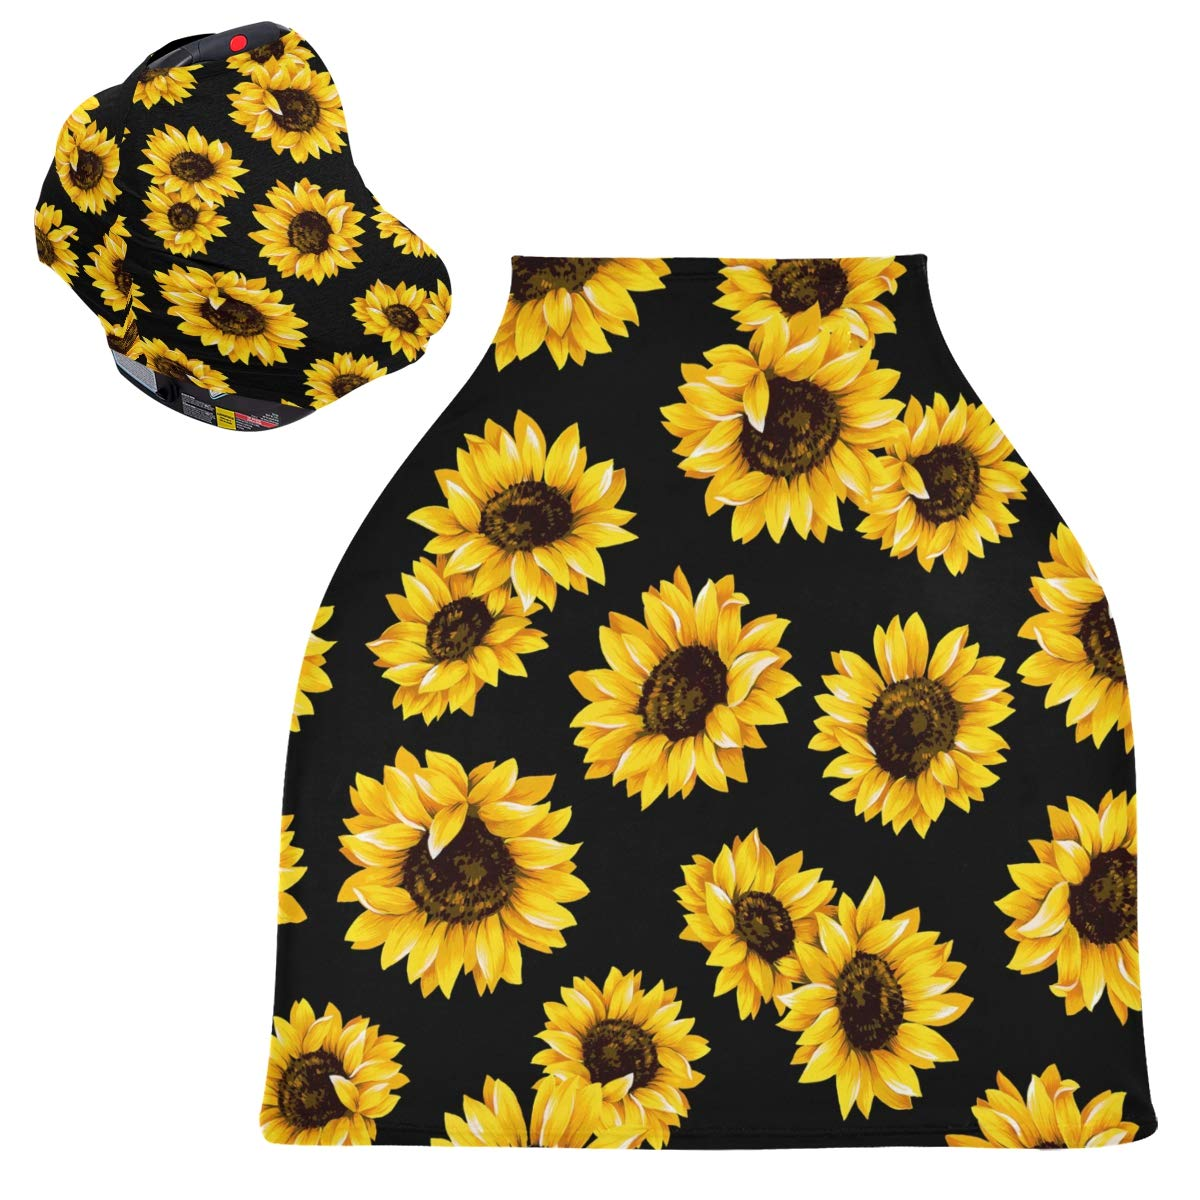 Stretchy Baby Car Seat Canopy - Beautiful Sunflowers in Black Background Infant Stroller Cover Multi Use Baby Carseat Cover Nursing Cover for Girl